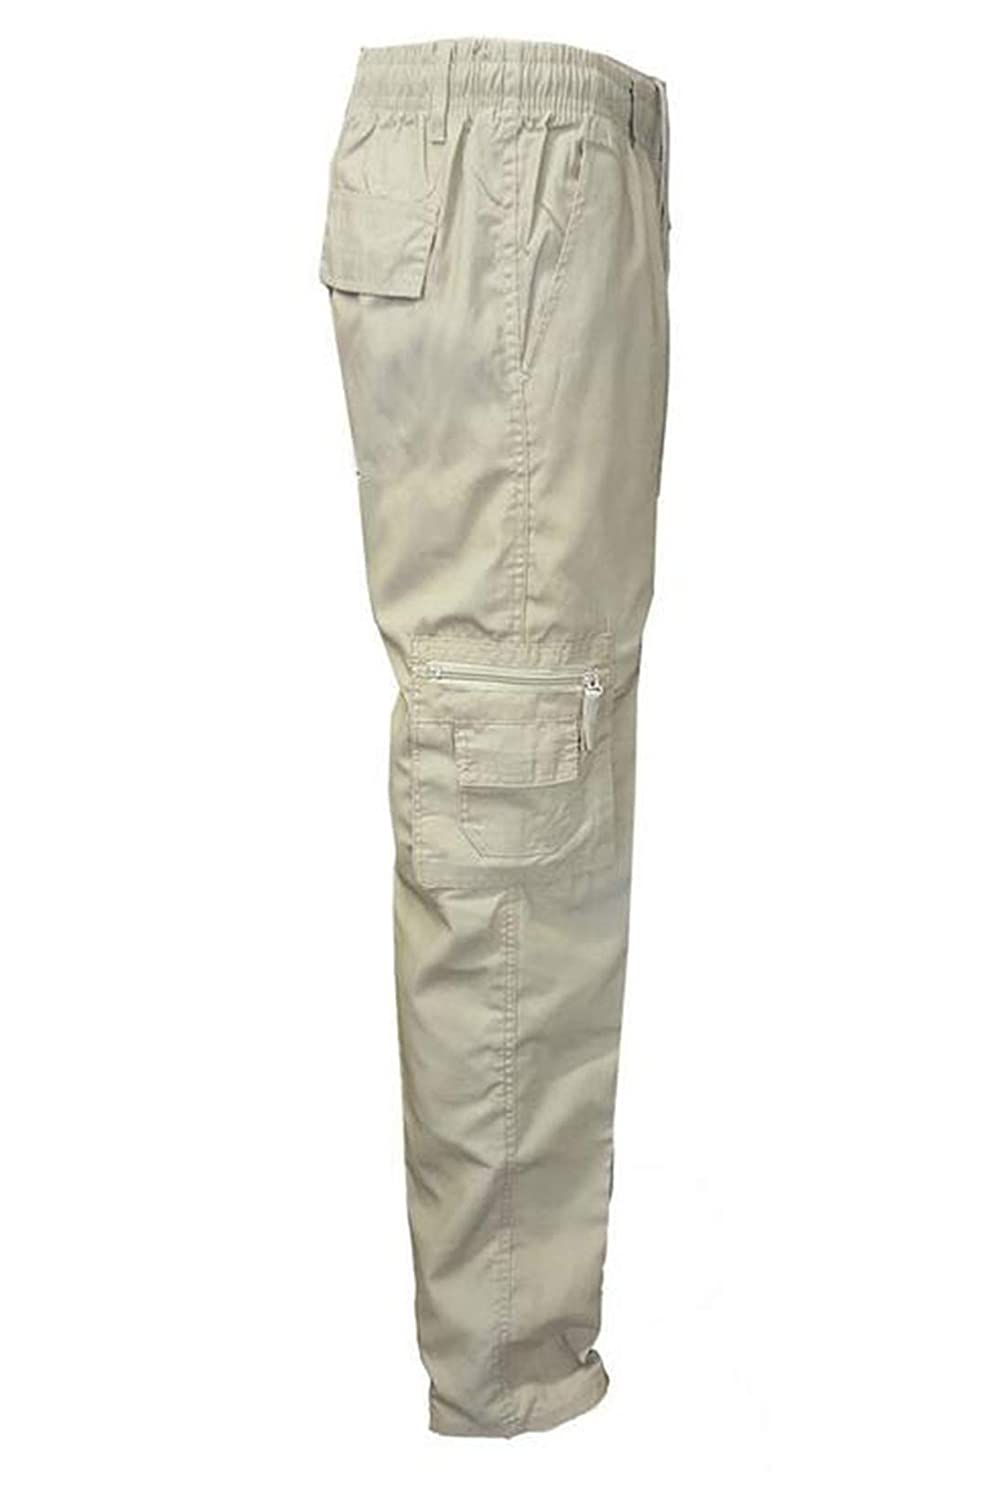 GRMO Men High Waist Cotton Multi Pockets Cargo Pants with Stretch